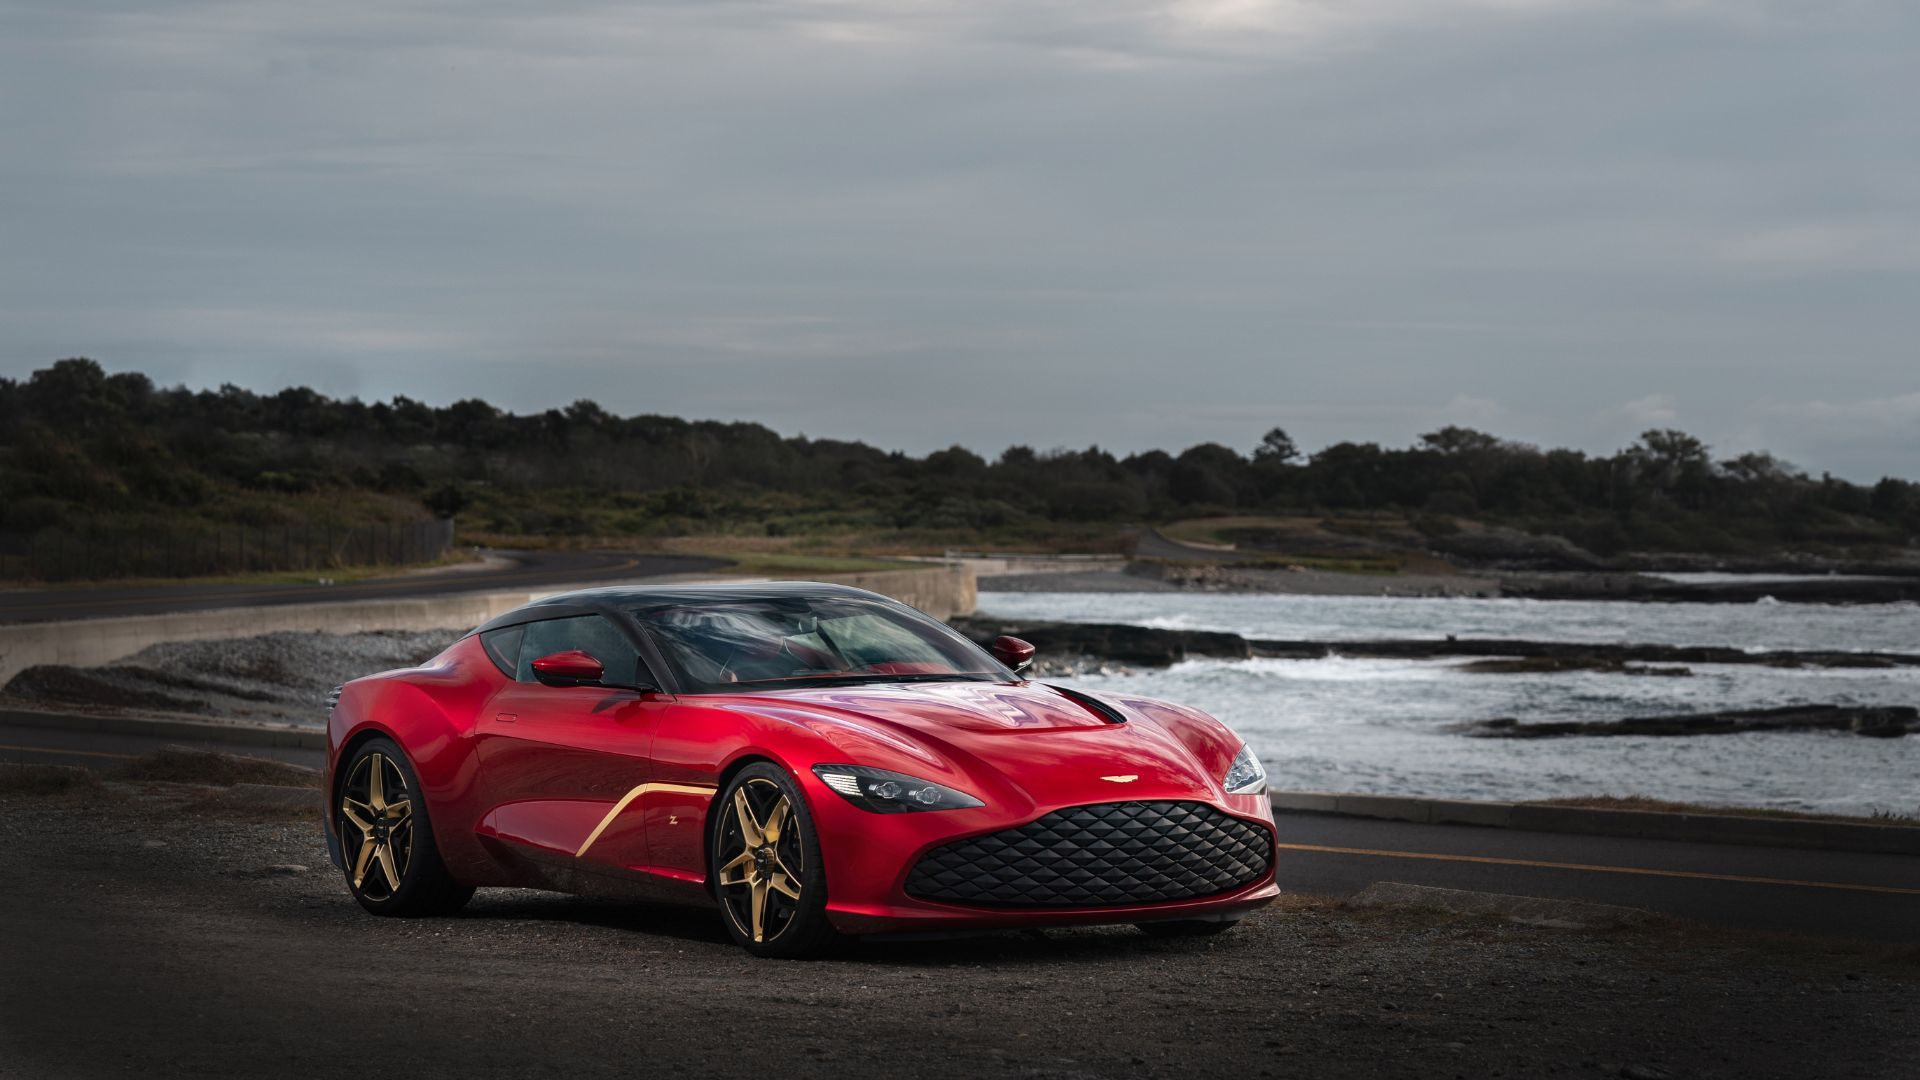 6 Million Aston Martin Dbs Gt Zagato Has The Midas Touch